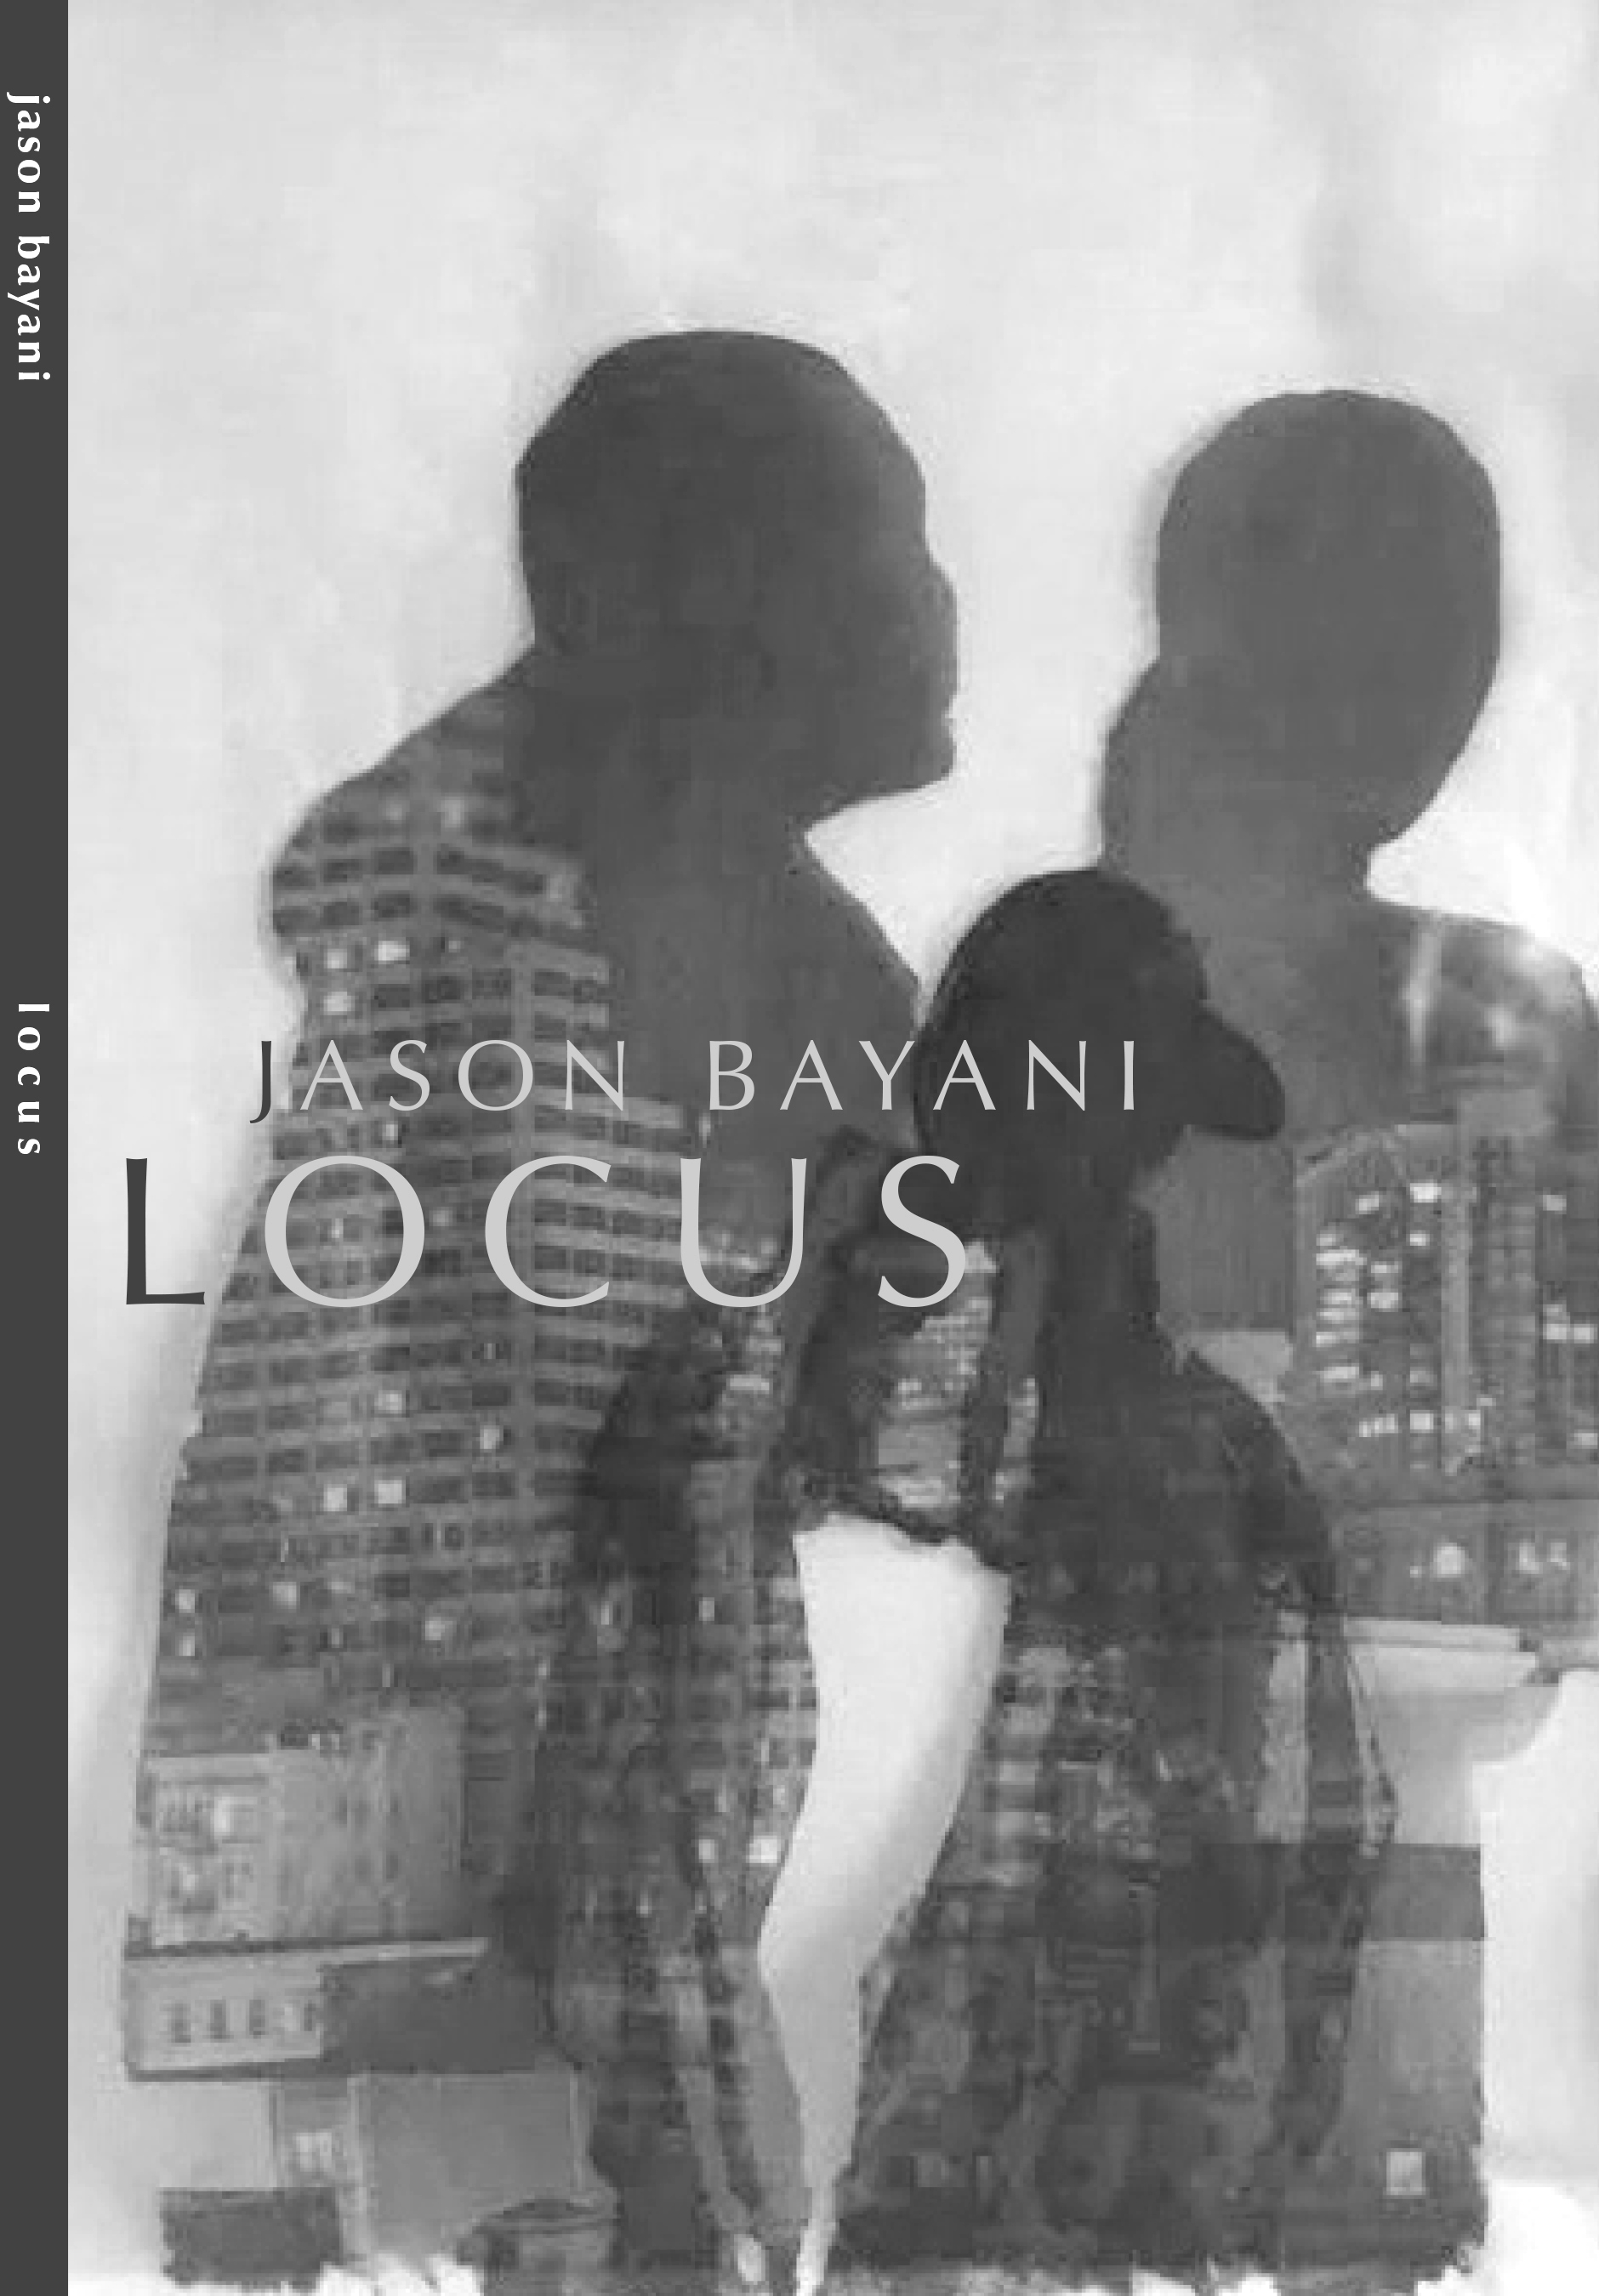 "- I'm very honored to have my artwork ( Flashback, 2018, Image transfer on synthetic organza, 13"" x 17"" from my TL Dreams series) on the cover of Jason Bayani's new poetry book ""Locus."" Pick up your copy now!Graphic design by Gillian Olivia Blythe HamelPublished by Omnidawn Publishing, Oakland, CA"